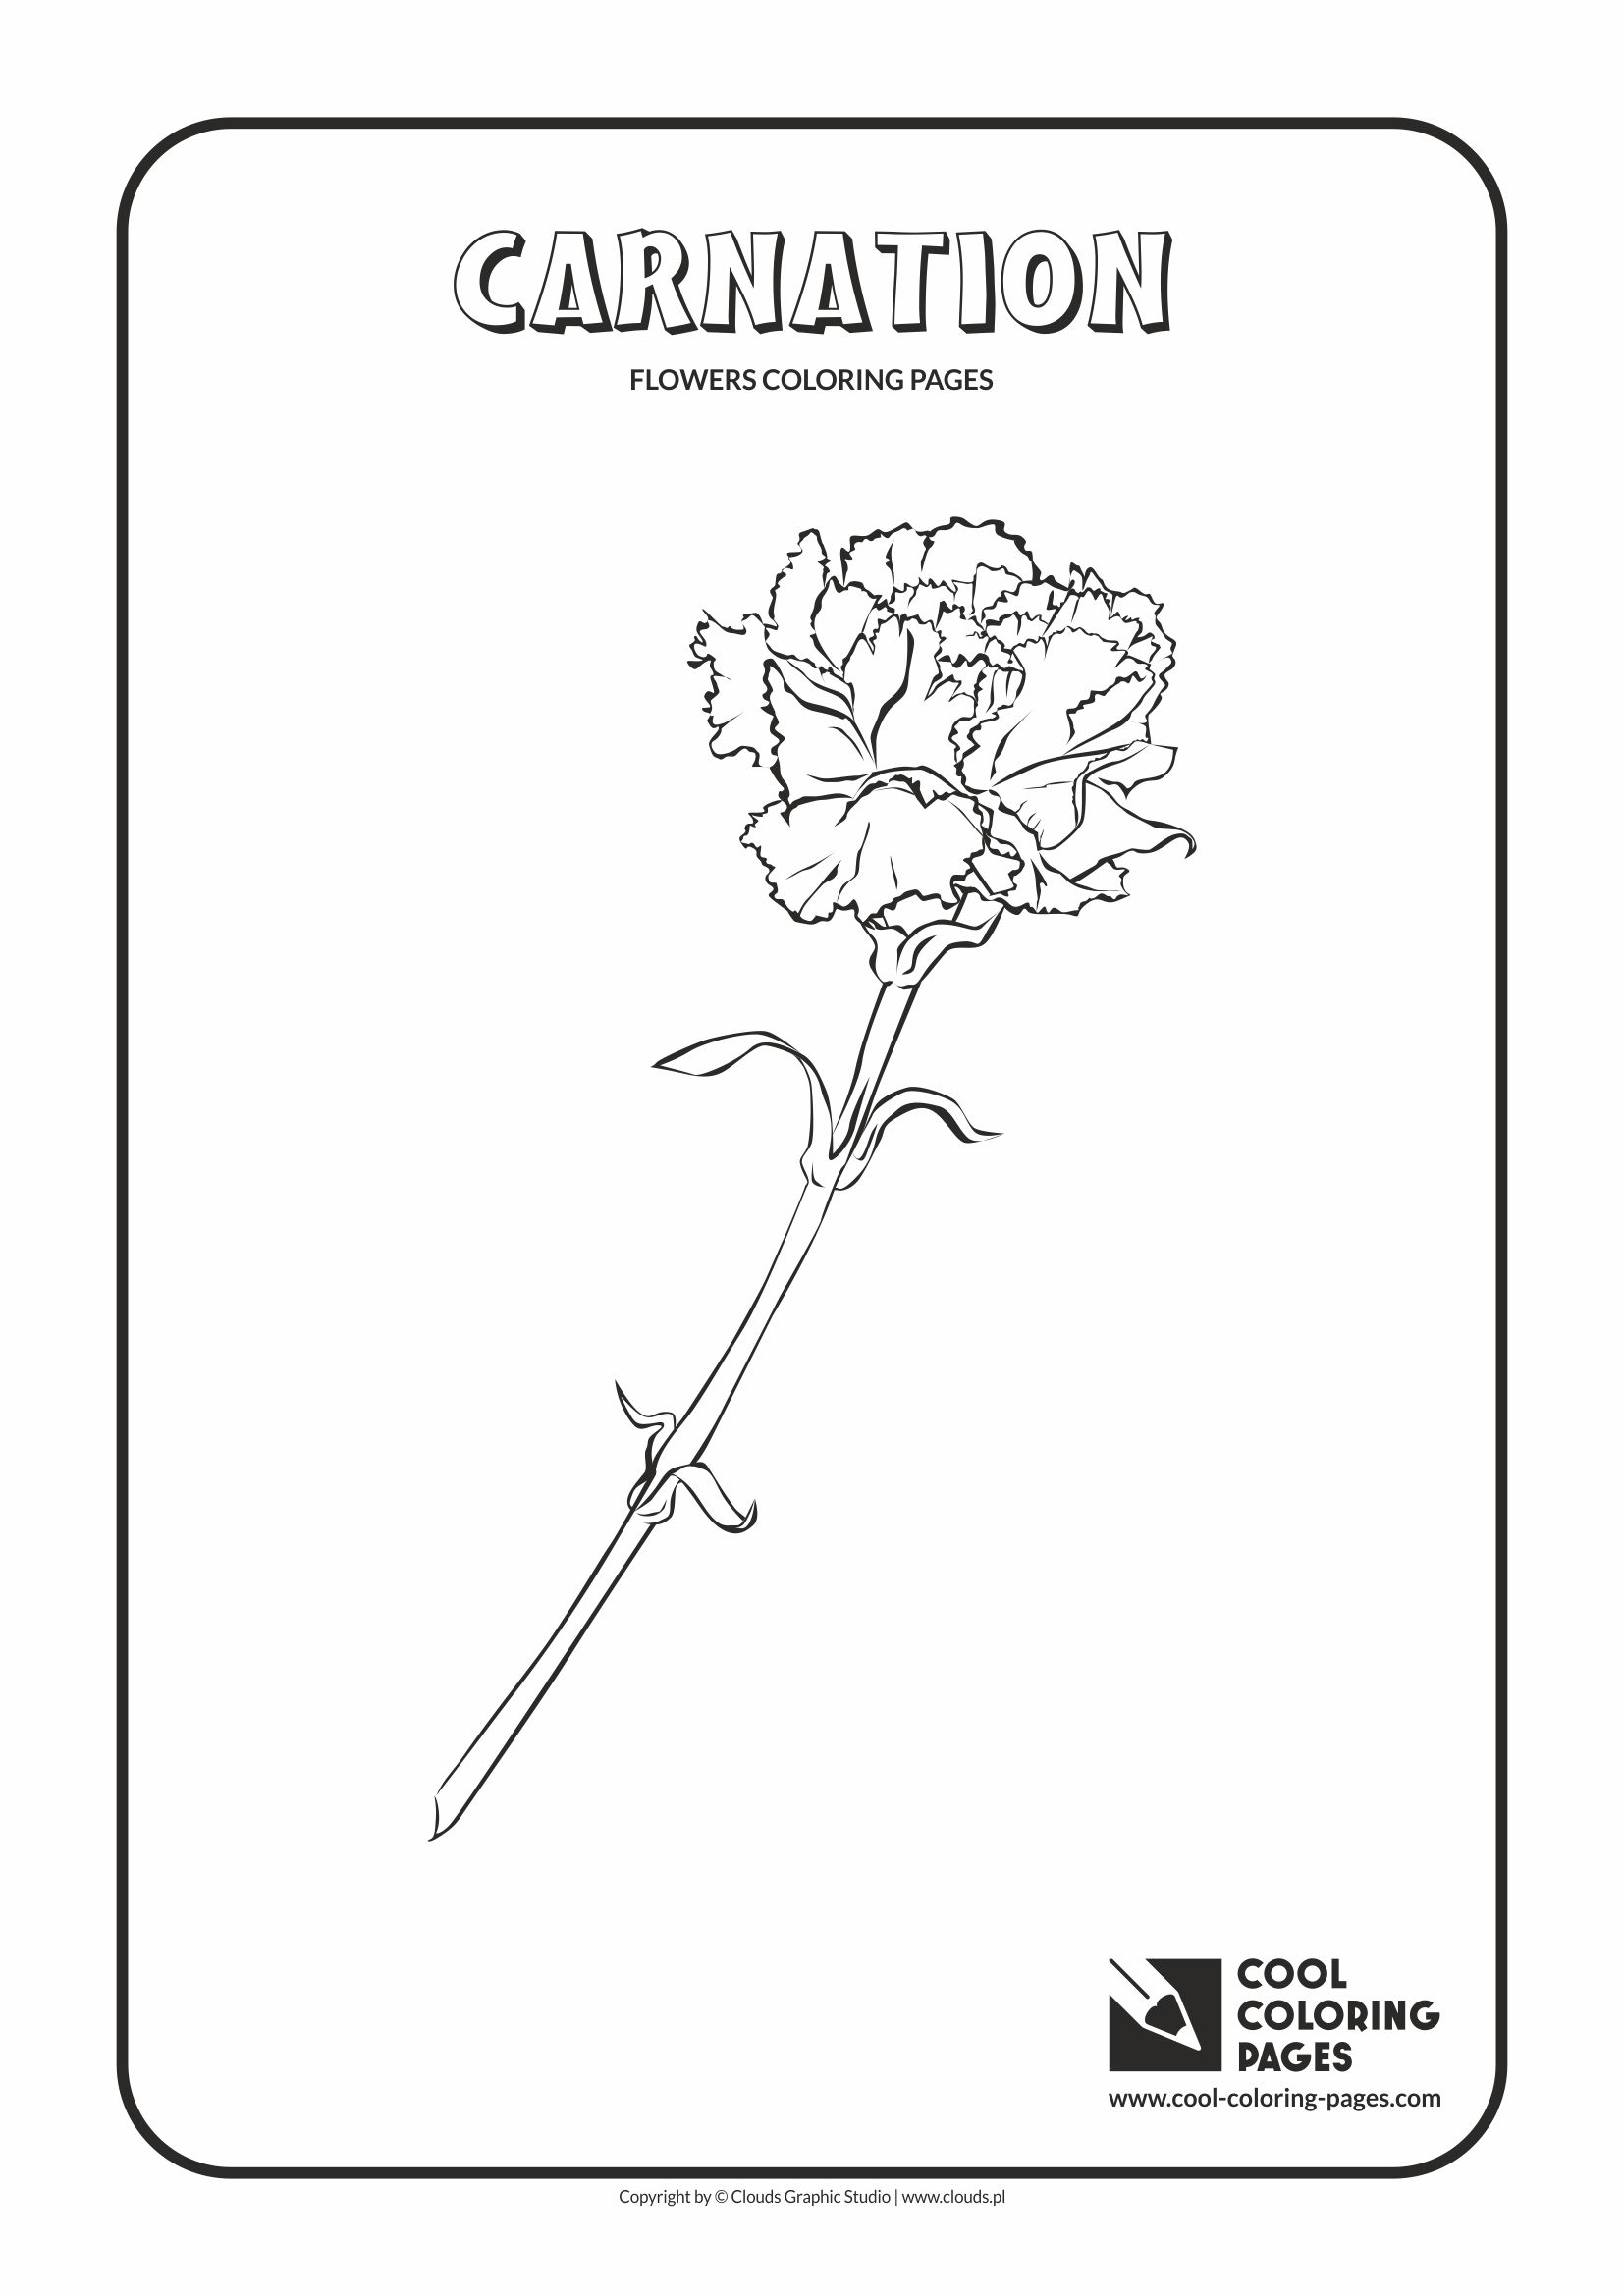 Cool Coloring Pages - Plants / Carnation / Coloring page with carnation